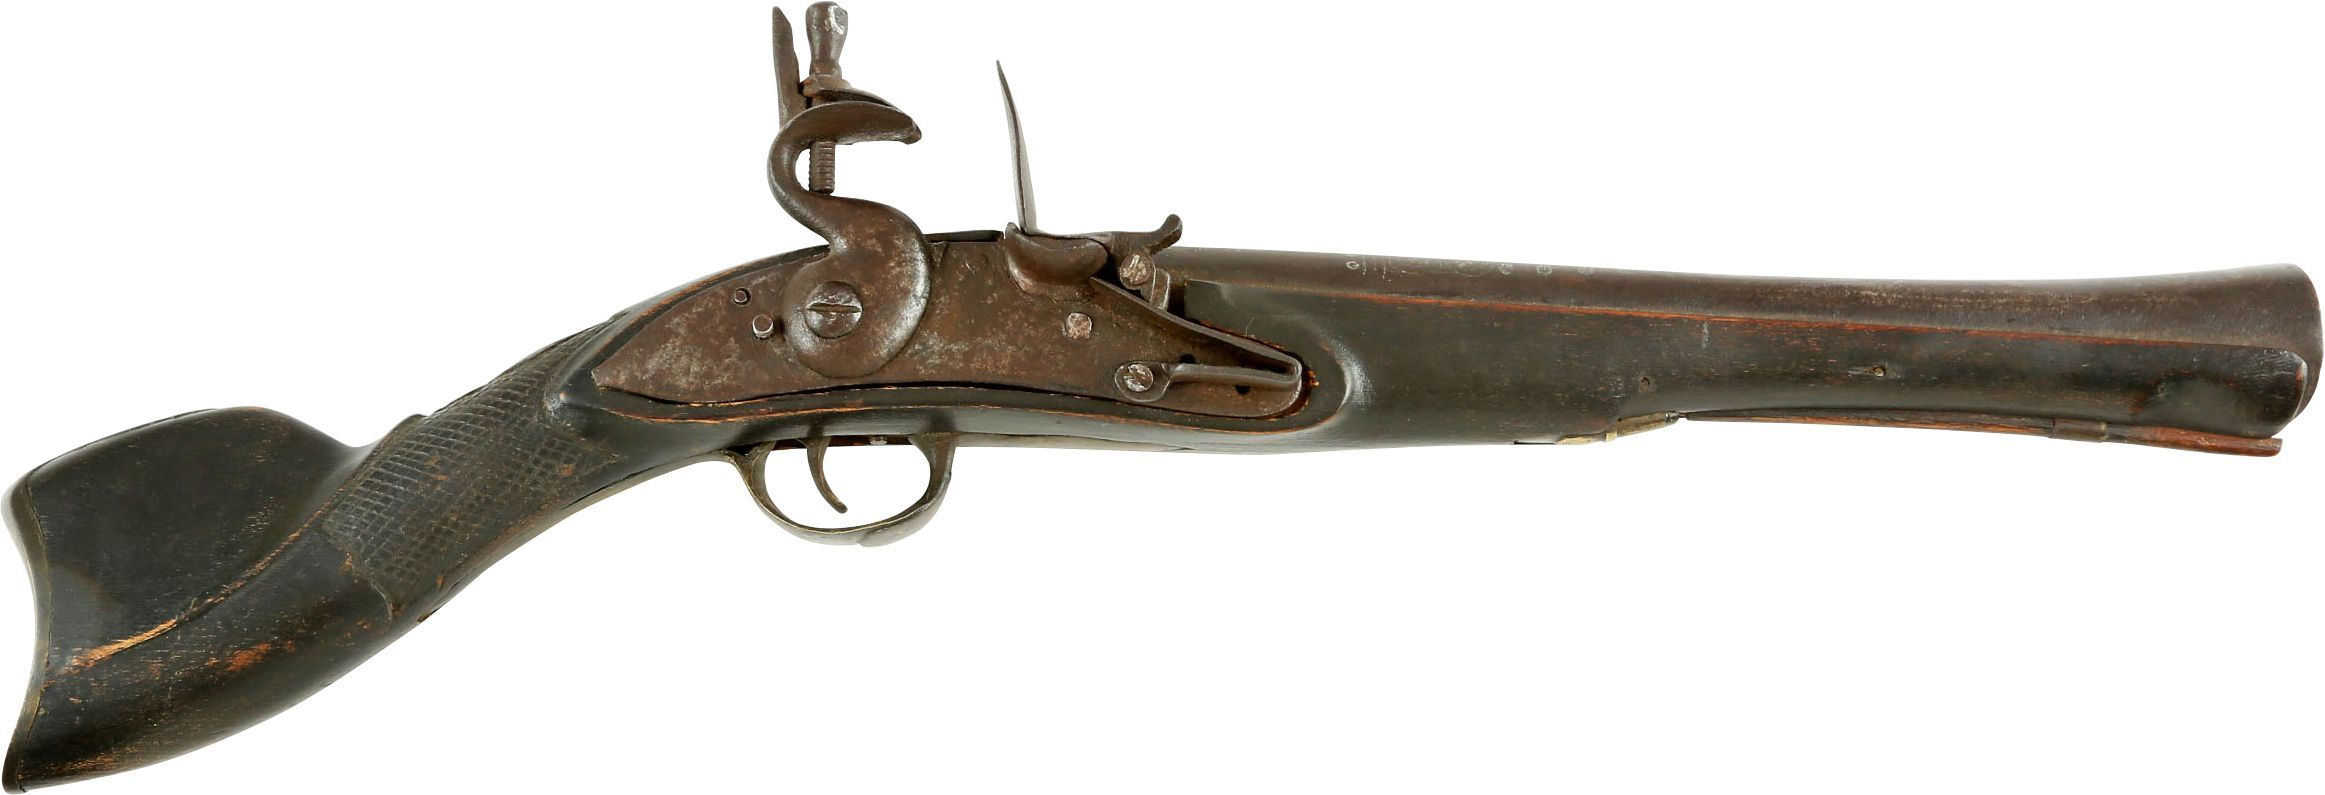 Ottoman Turkish Flintlock Blunderbuss - Product